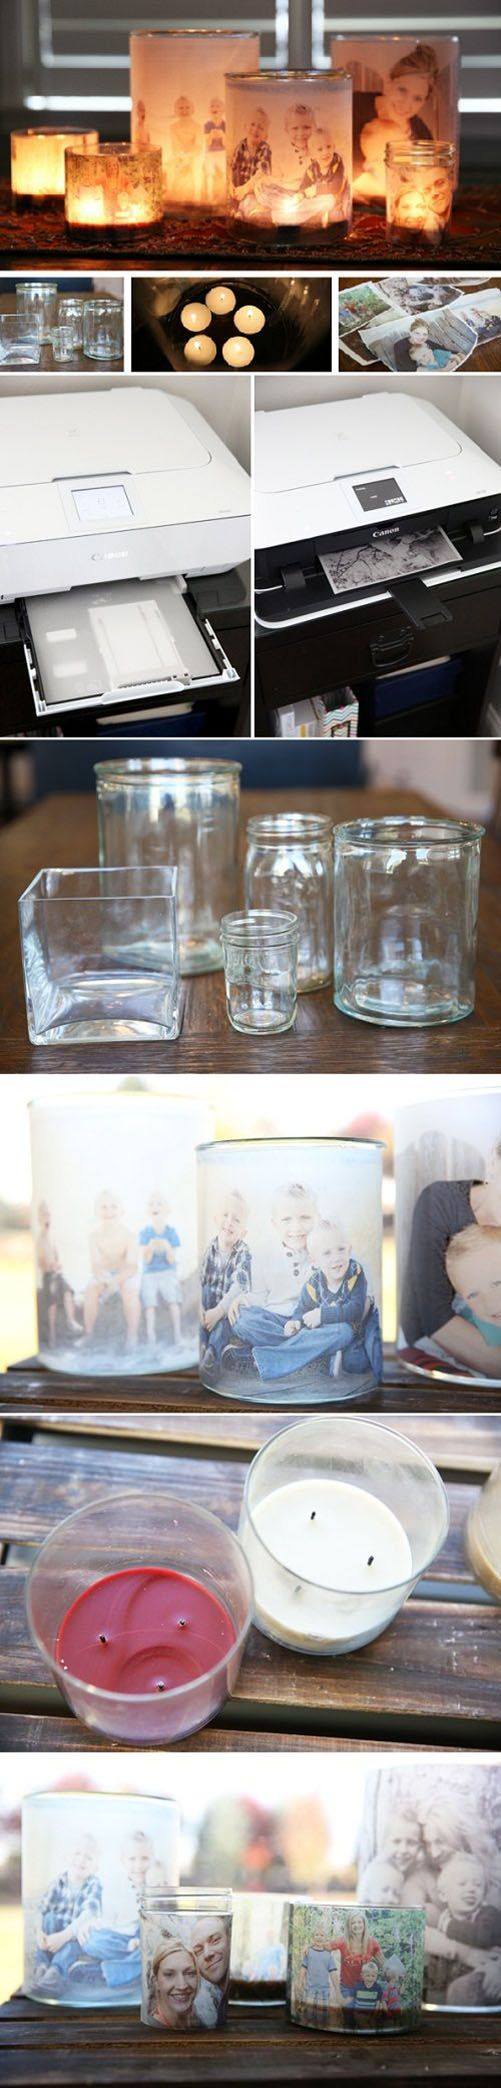 16 DIY Glowing Photo Luminaries d2e0c03 | DIY | Inexpensive to do ...